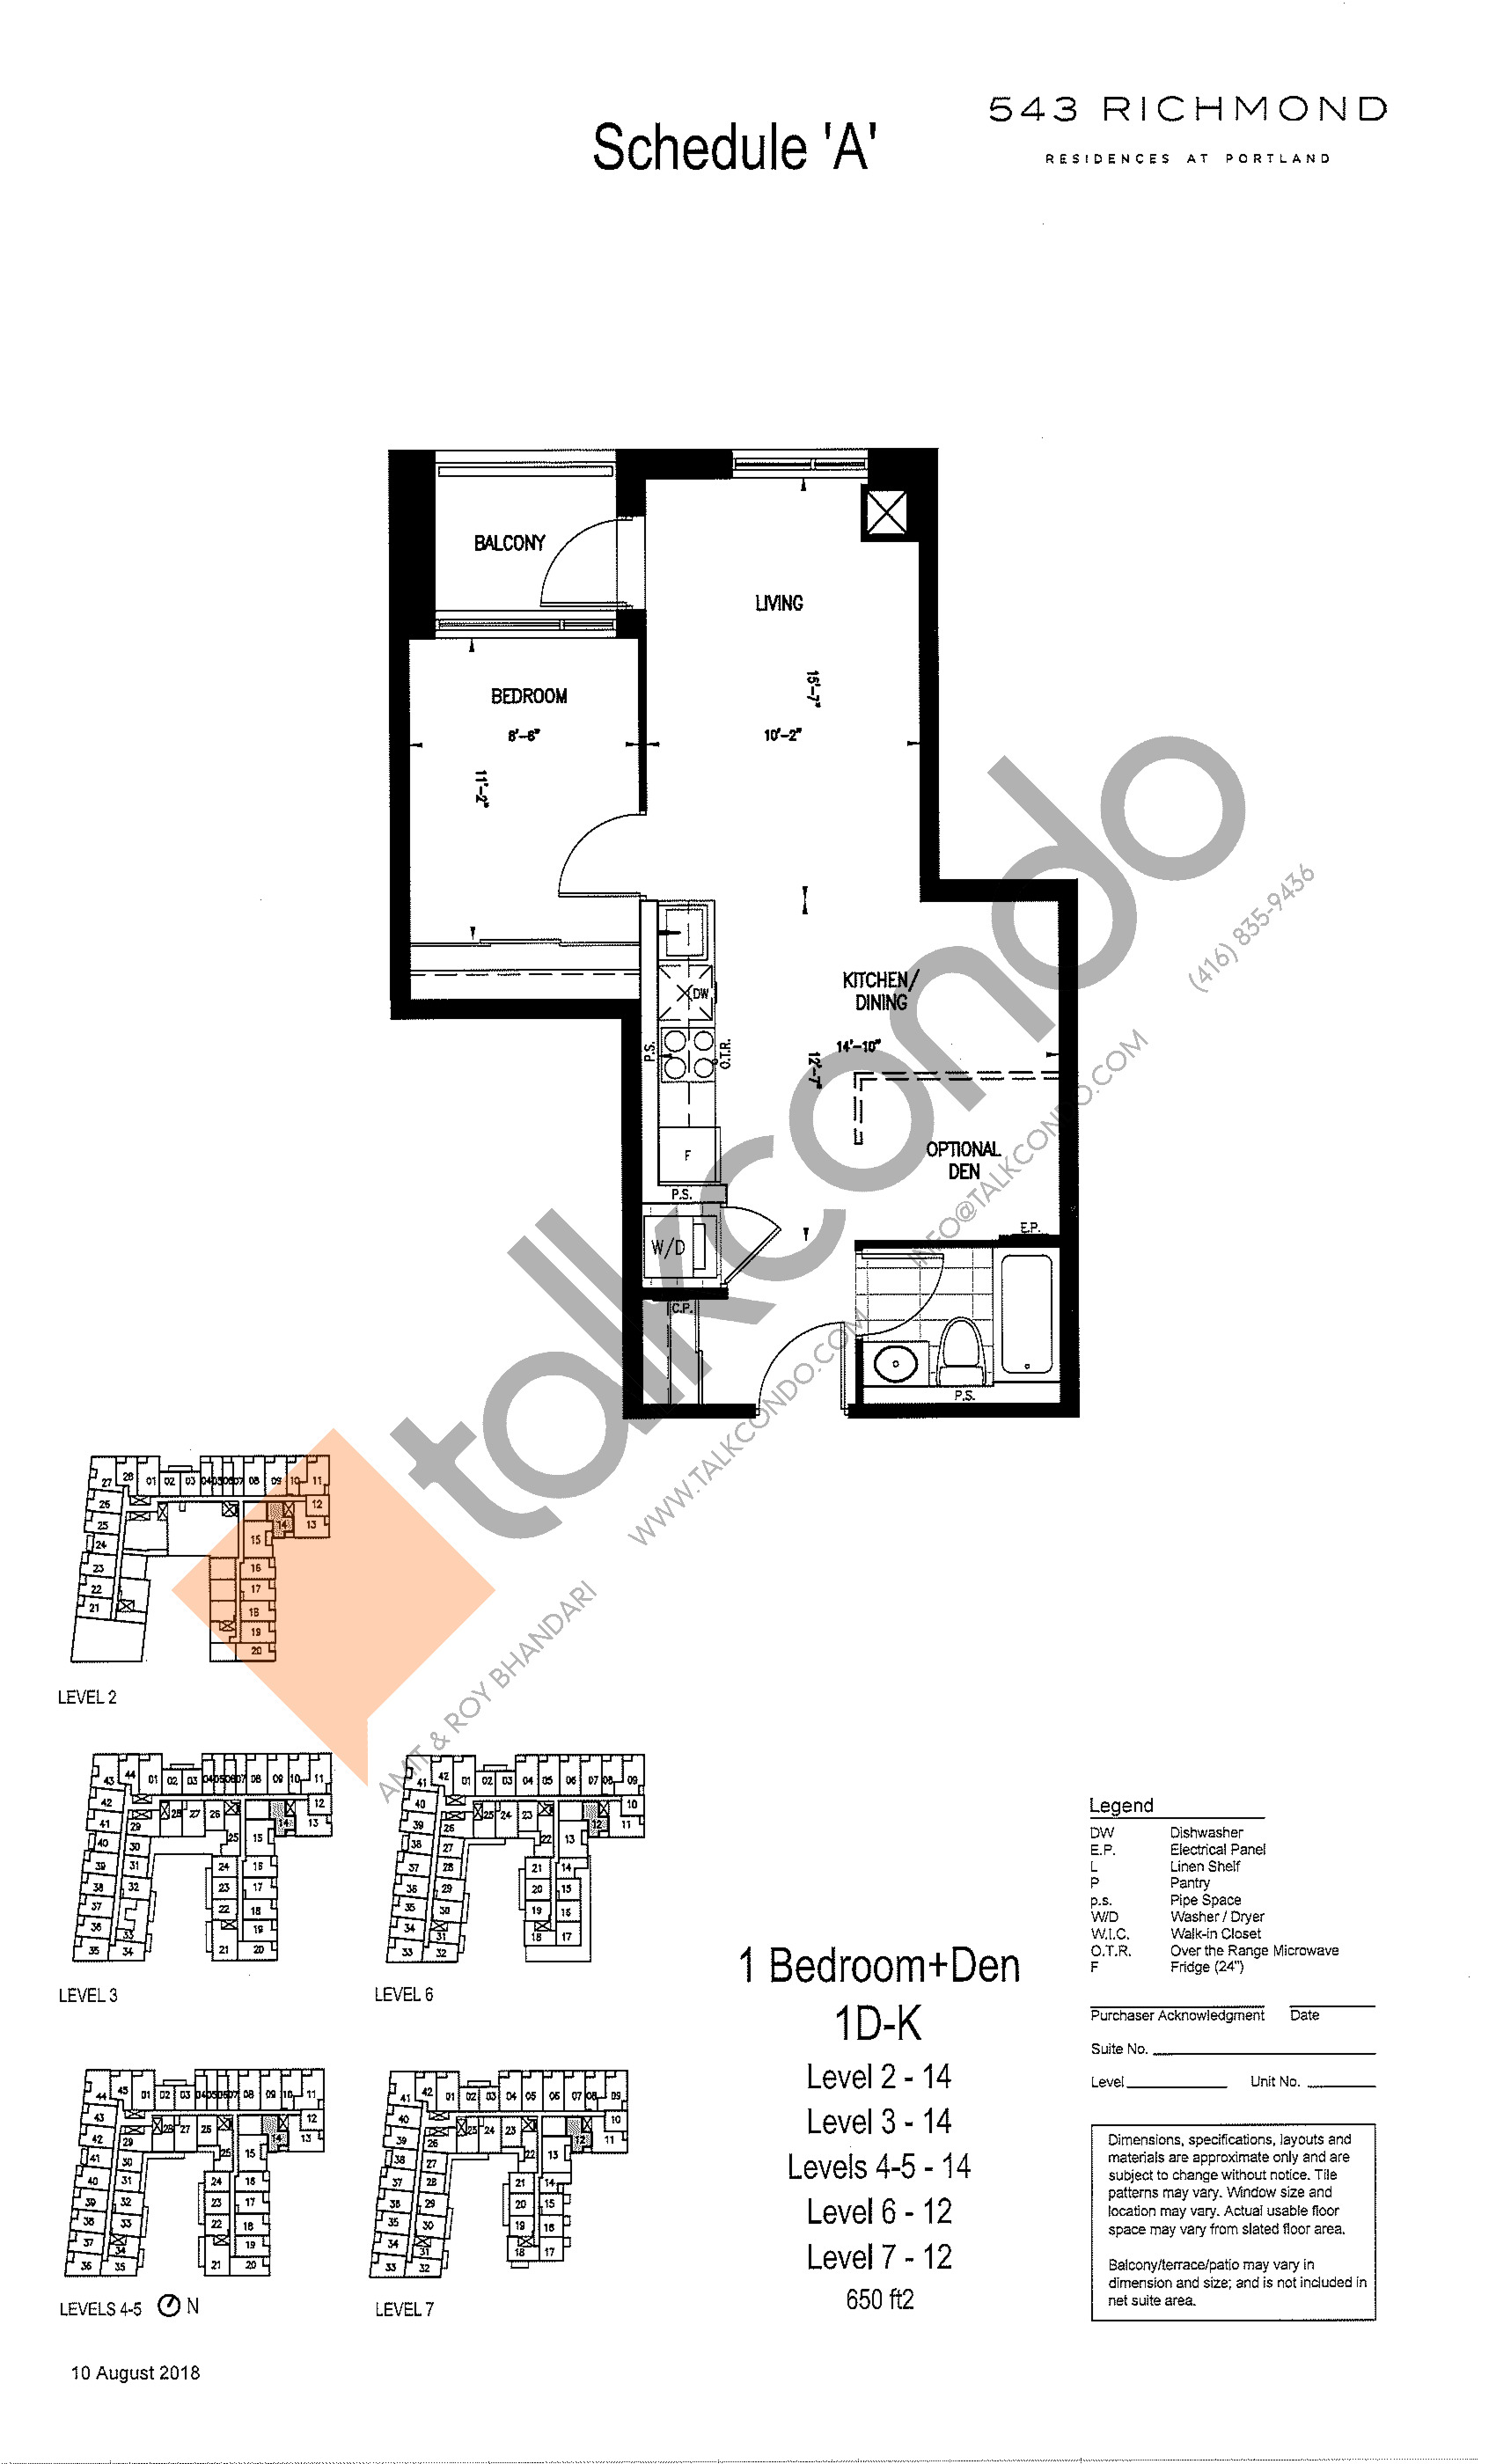 1D-K Floor Plan at 543 Richmond St Condos - 650 sq.ft